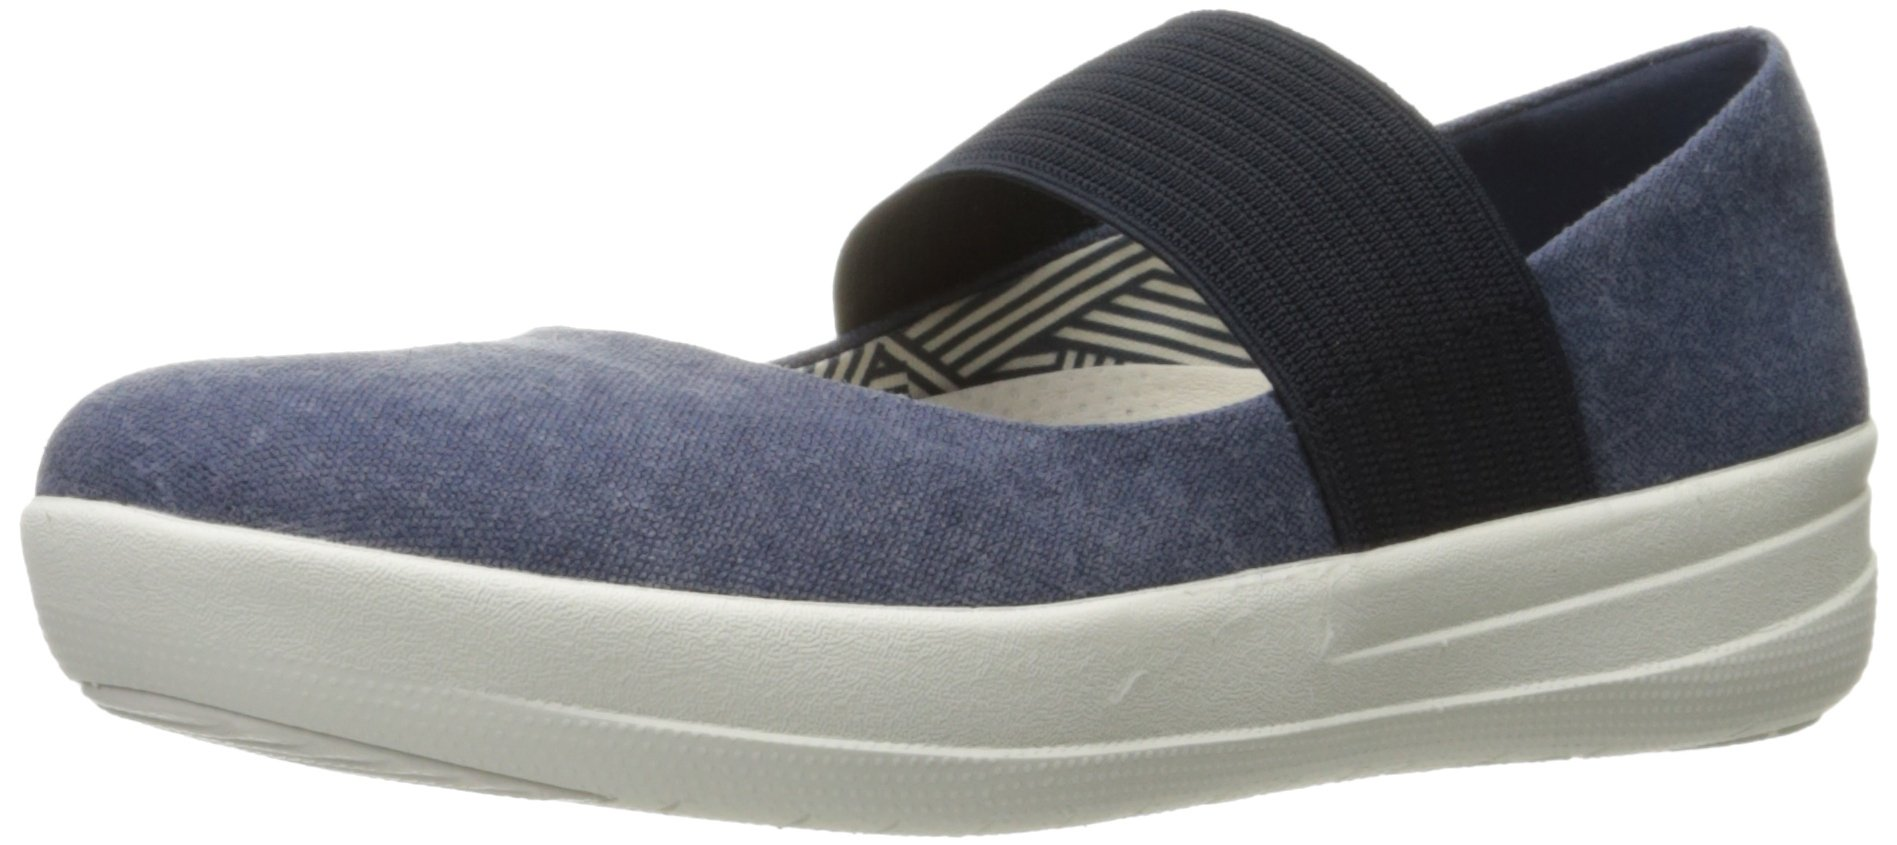 FitFlop Women's F-Sporty Mary Jane Flat, Midnight Navy, 6.5 M US